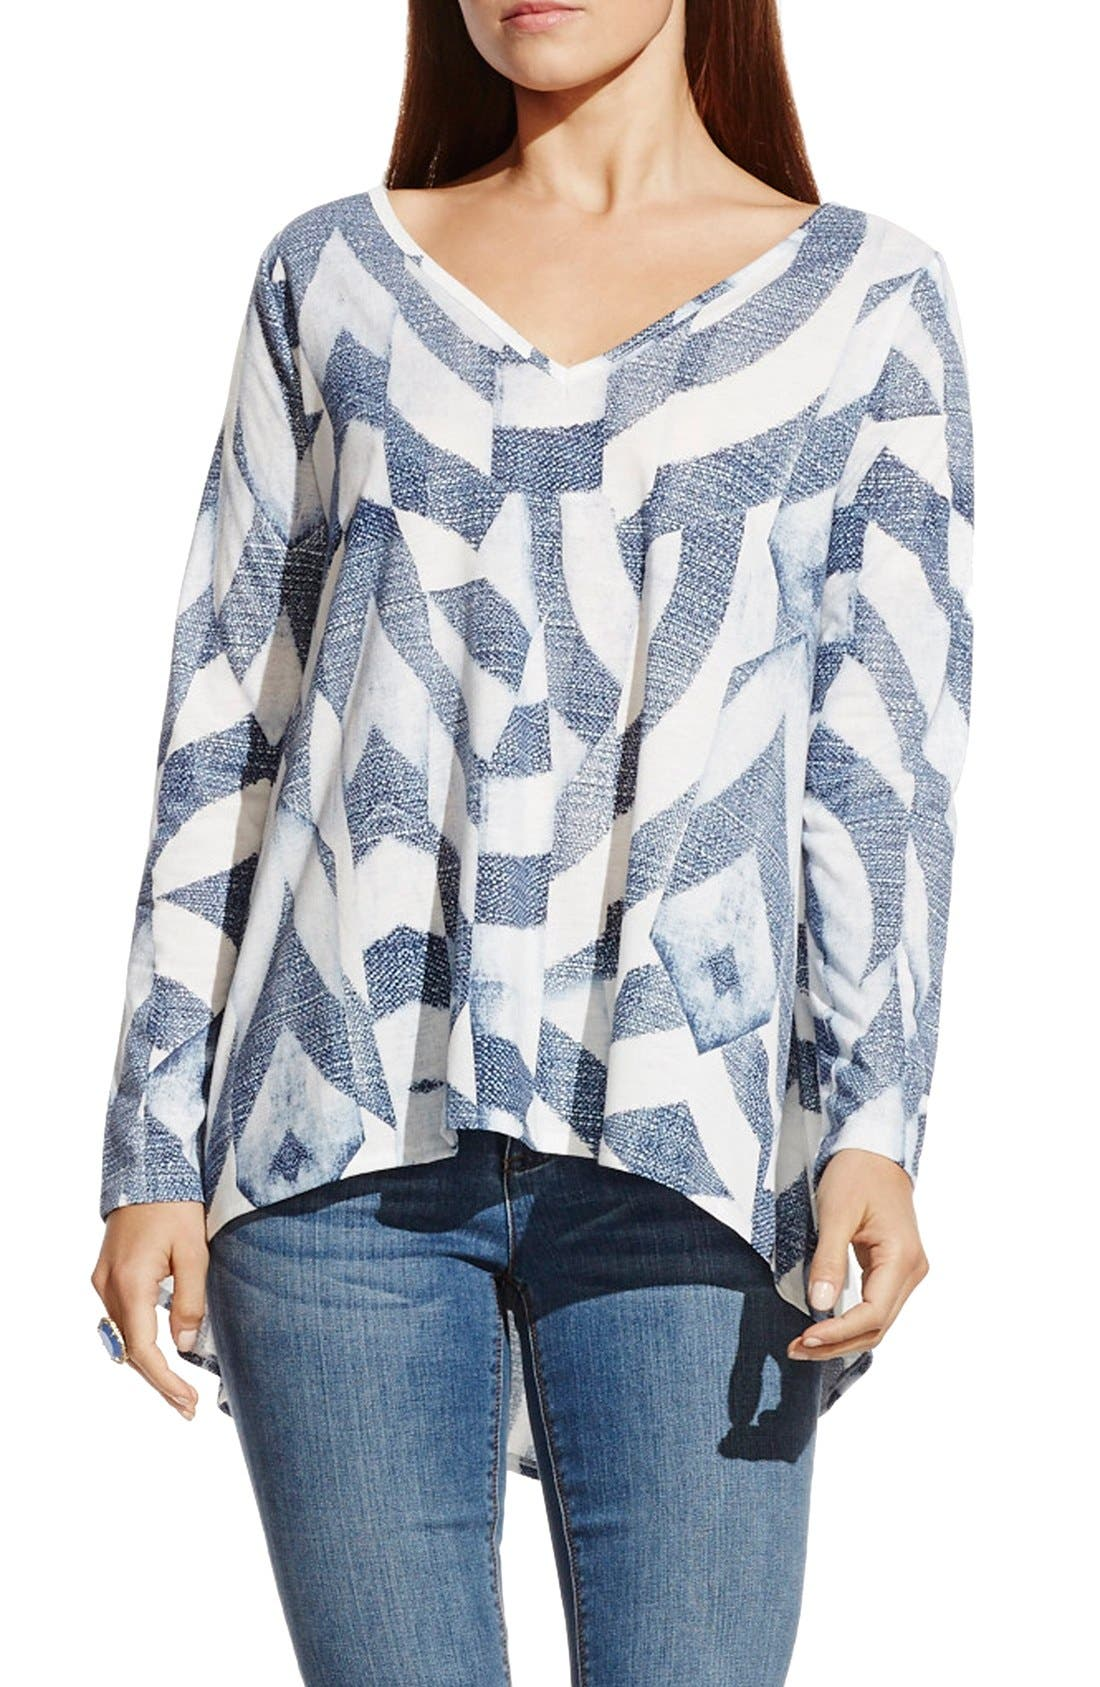 Main Image - Two by Vince Camuto 'Broken Maze' Print High/Low V-Neck Tunic